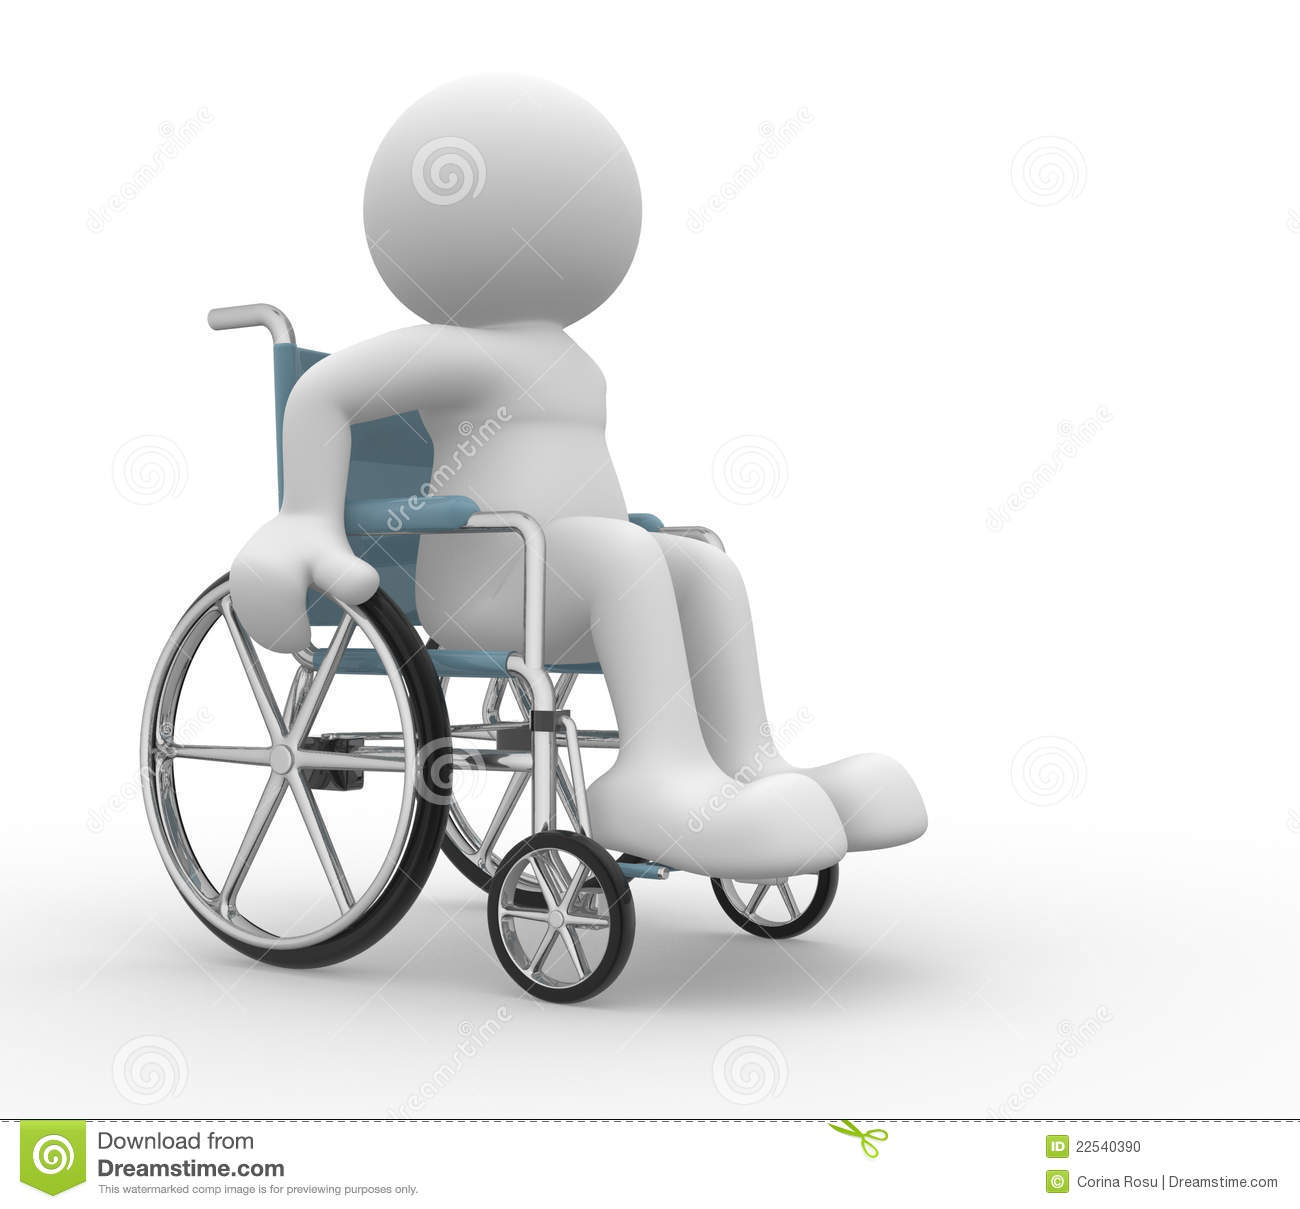 wheel chair prices cover express los angeles ca wheelchair stock photo - image: 22540390